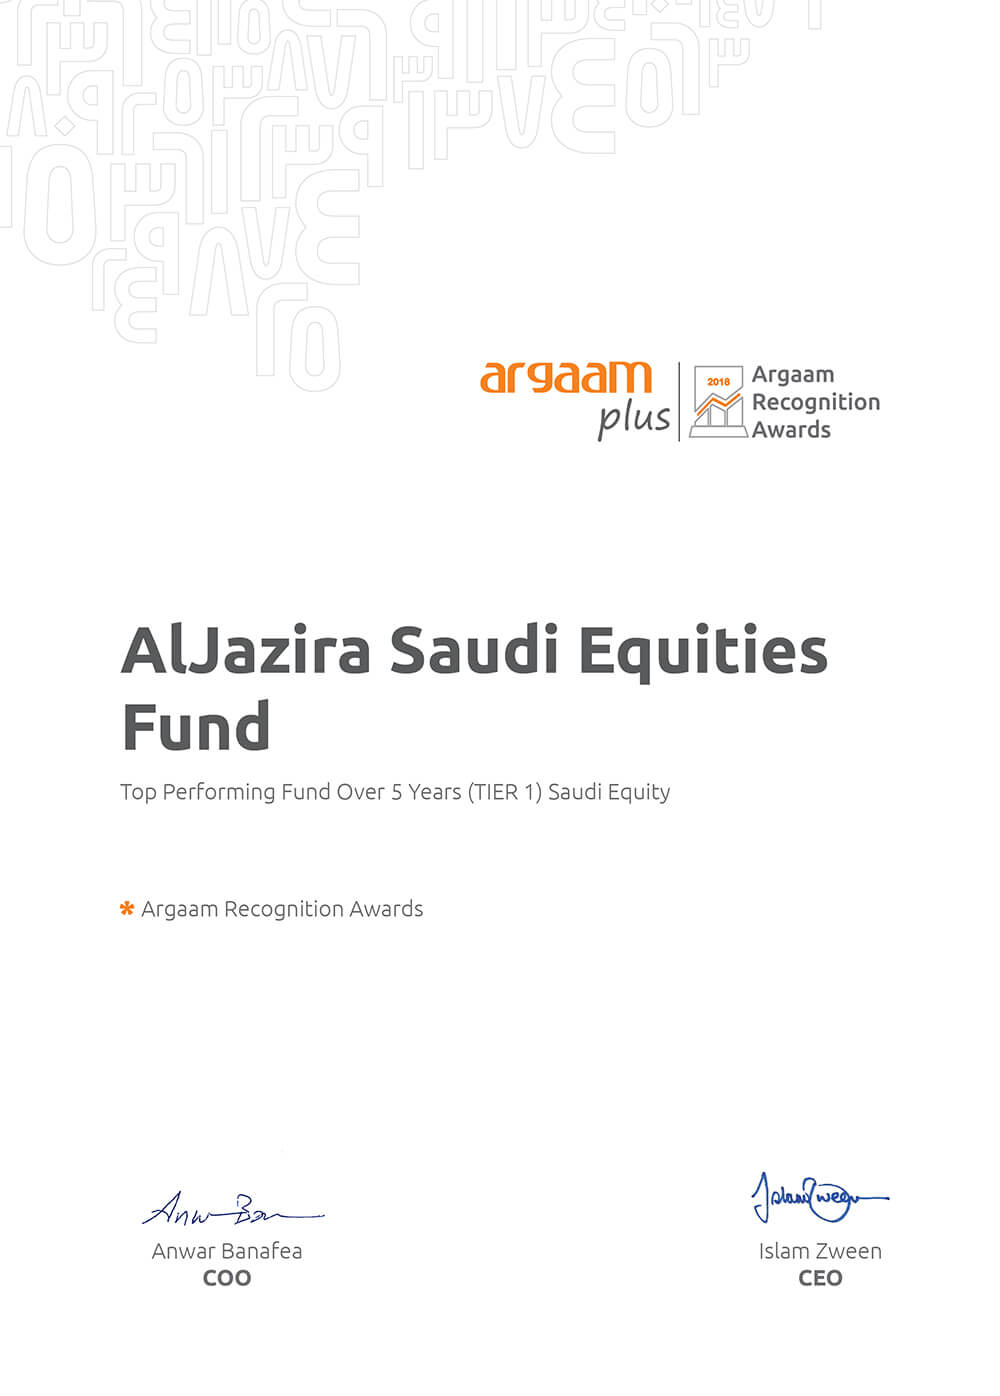 top-performing-fund-over-5-years-tier-1-saudi-equity